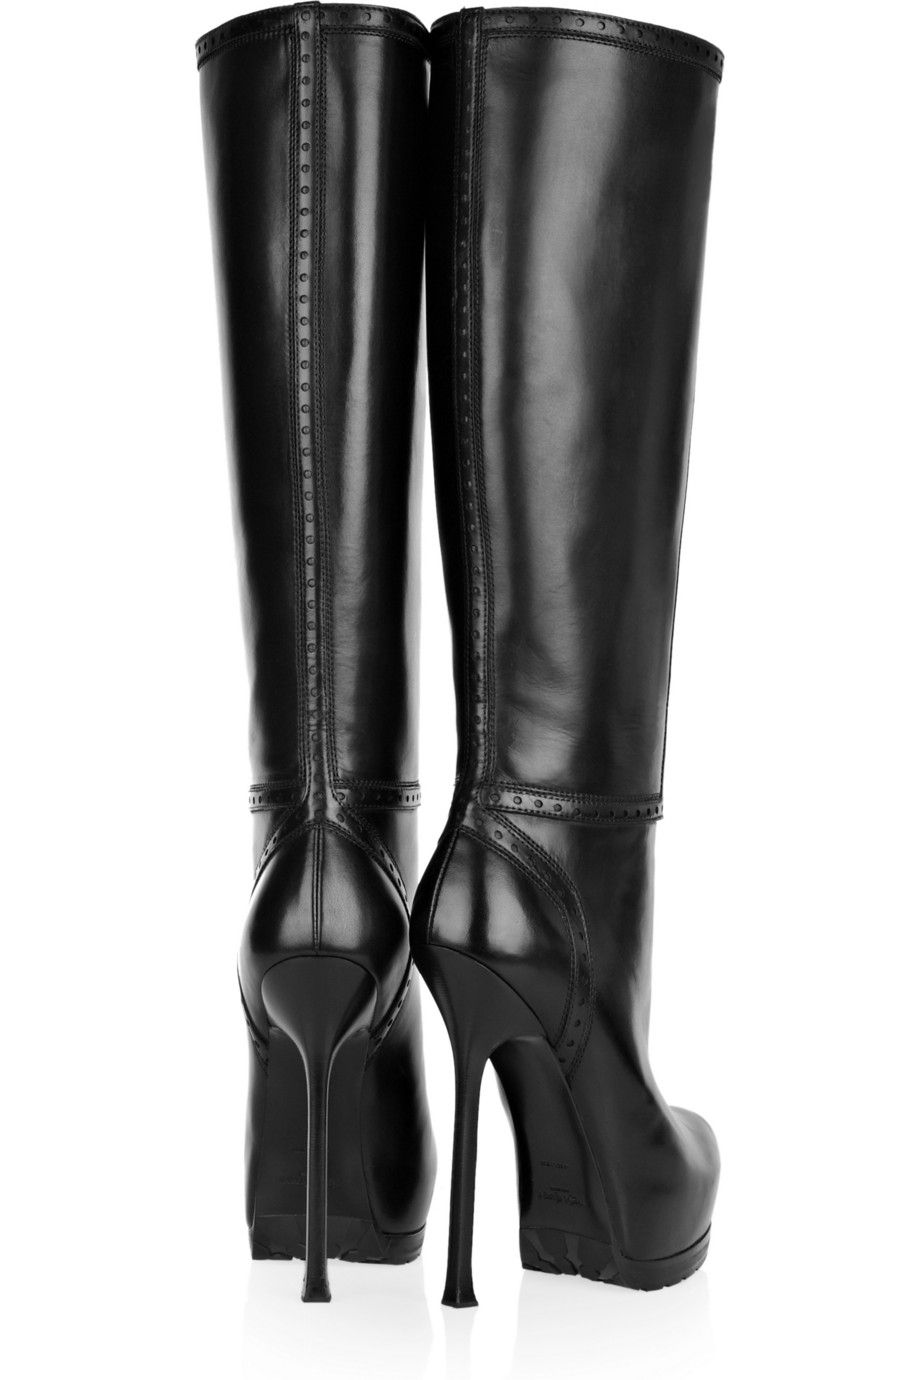 Yves Saint Laurent Platform Leather Knee-High Boots cheap sale best prices free shipping great deals with paypal cheap price discount authentic discount enjoy l81ka2ISN